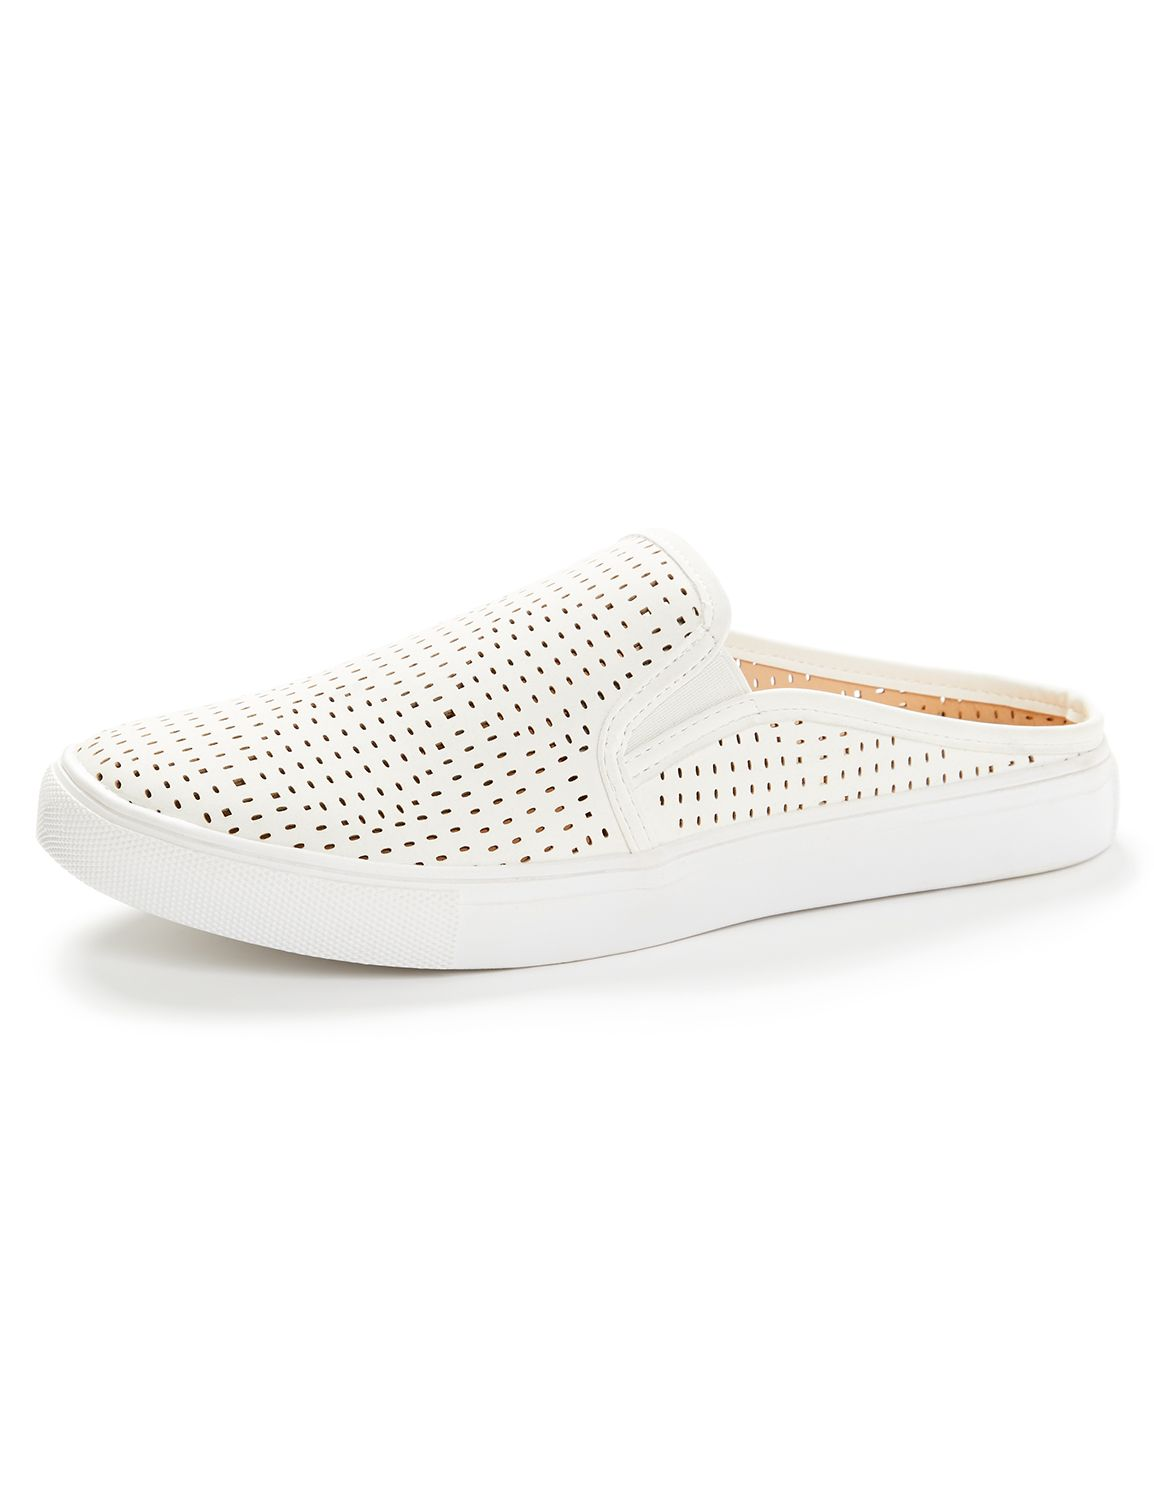 Good Soles Slip-On Sneaker Perf Slip On Sneaker M24813 MP-300097783